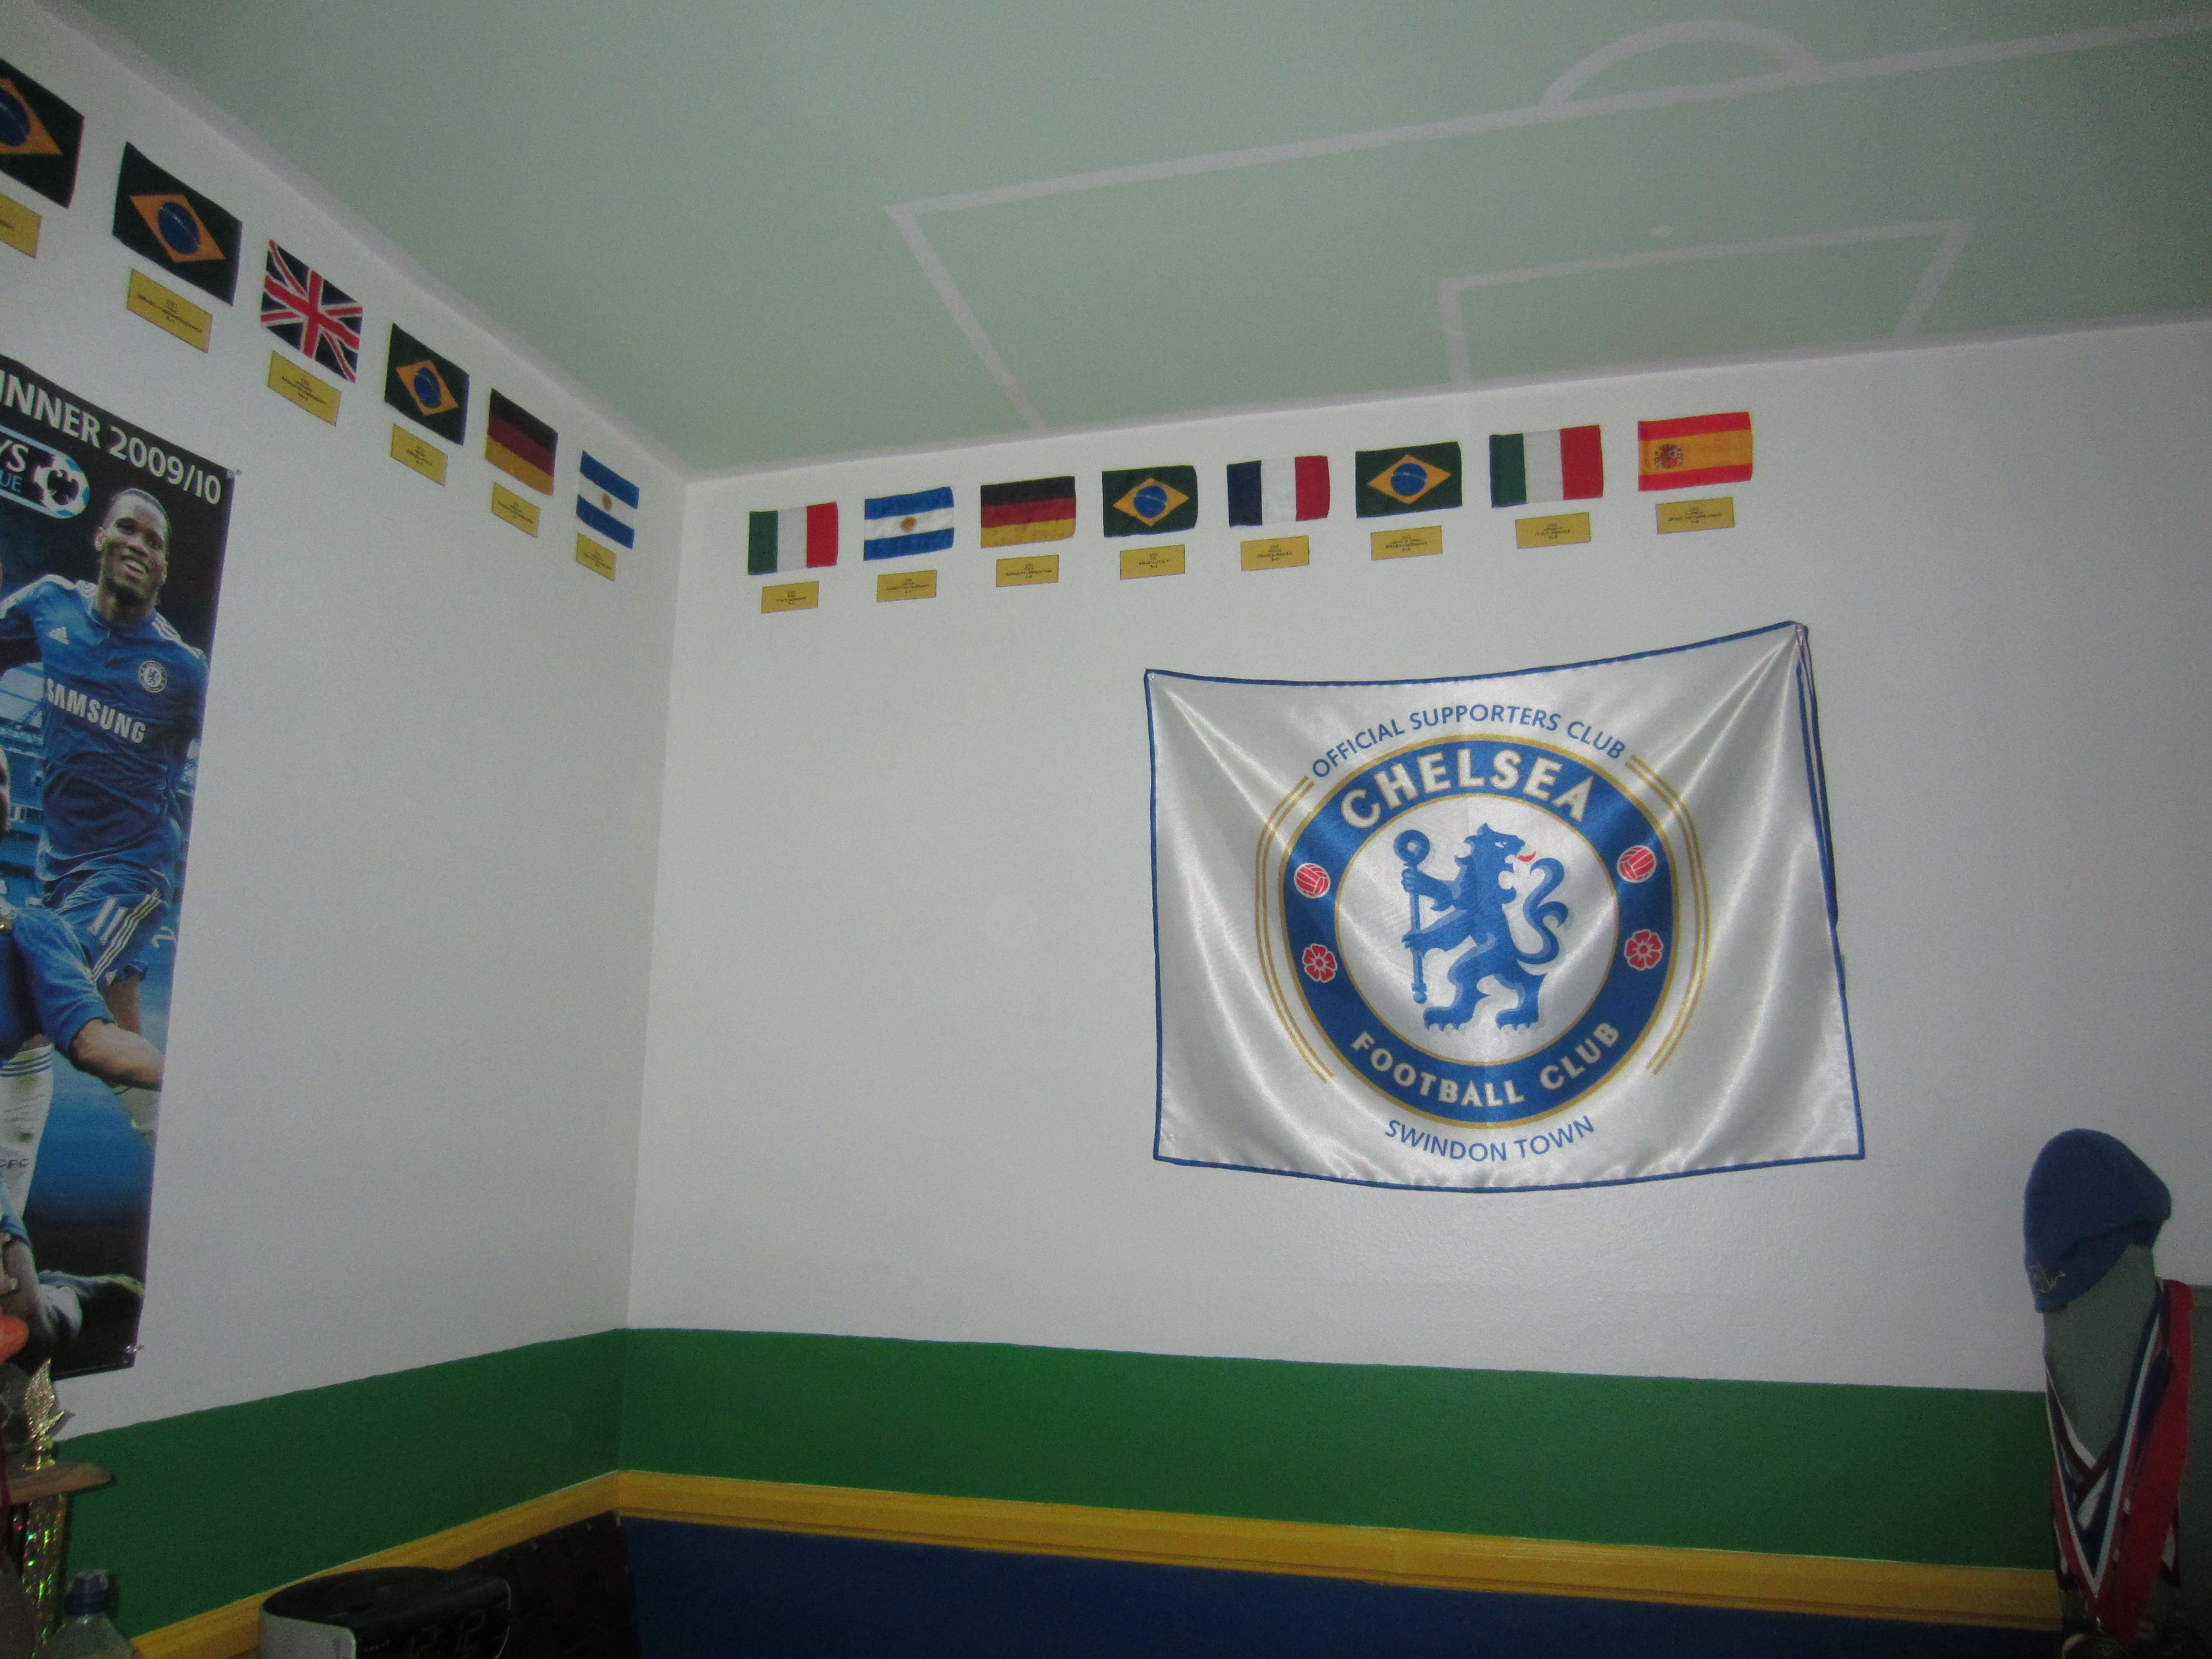 Soccer Fan S Room Flags Of World Cup Winners Around The Edge Of The Ceiling Soccer Field Painted On The Ceiling Soccer Bedroom Field Paint World Cup Winners